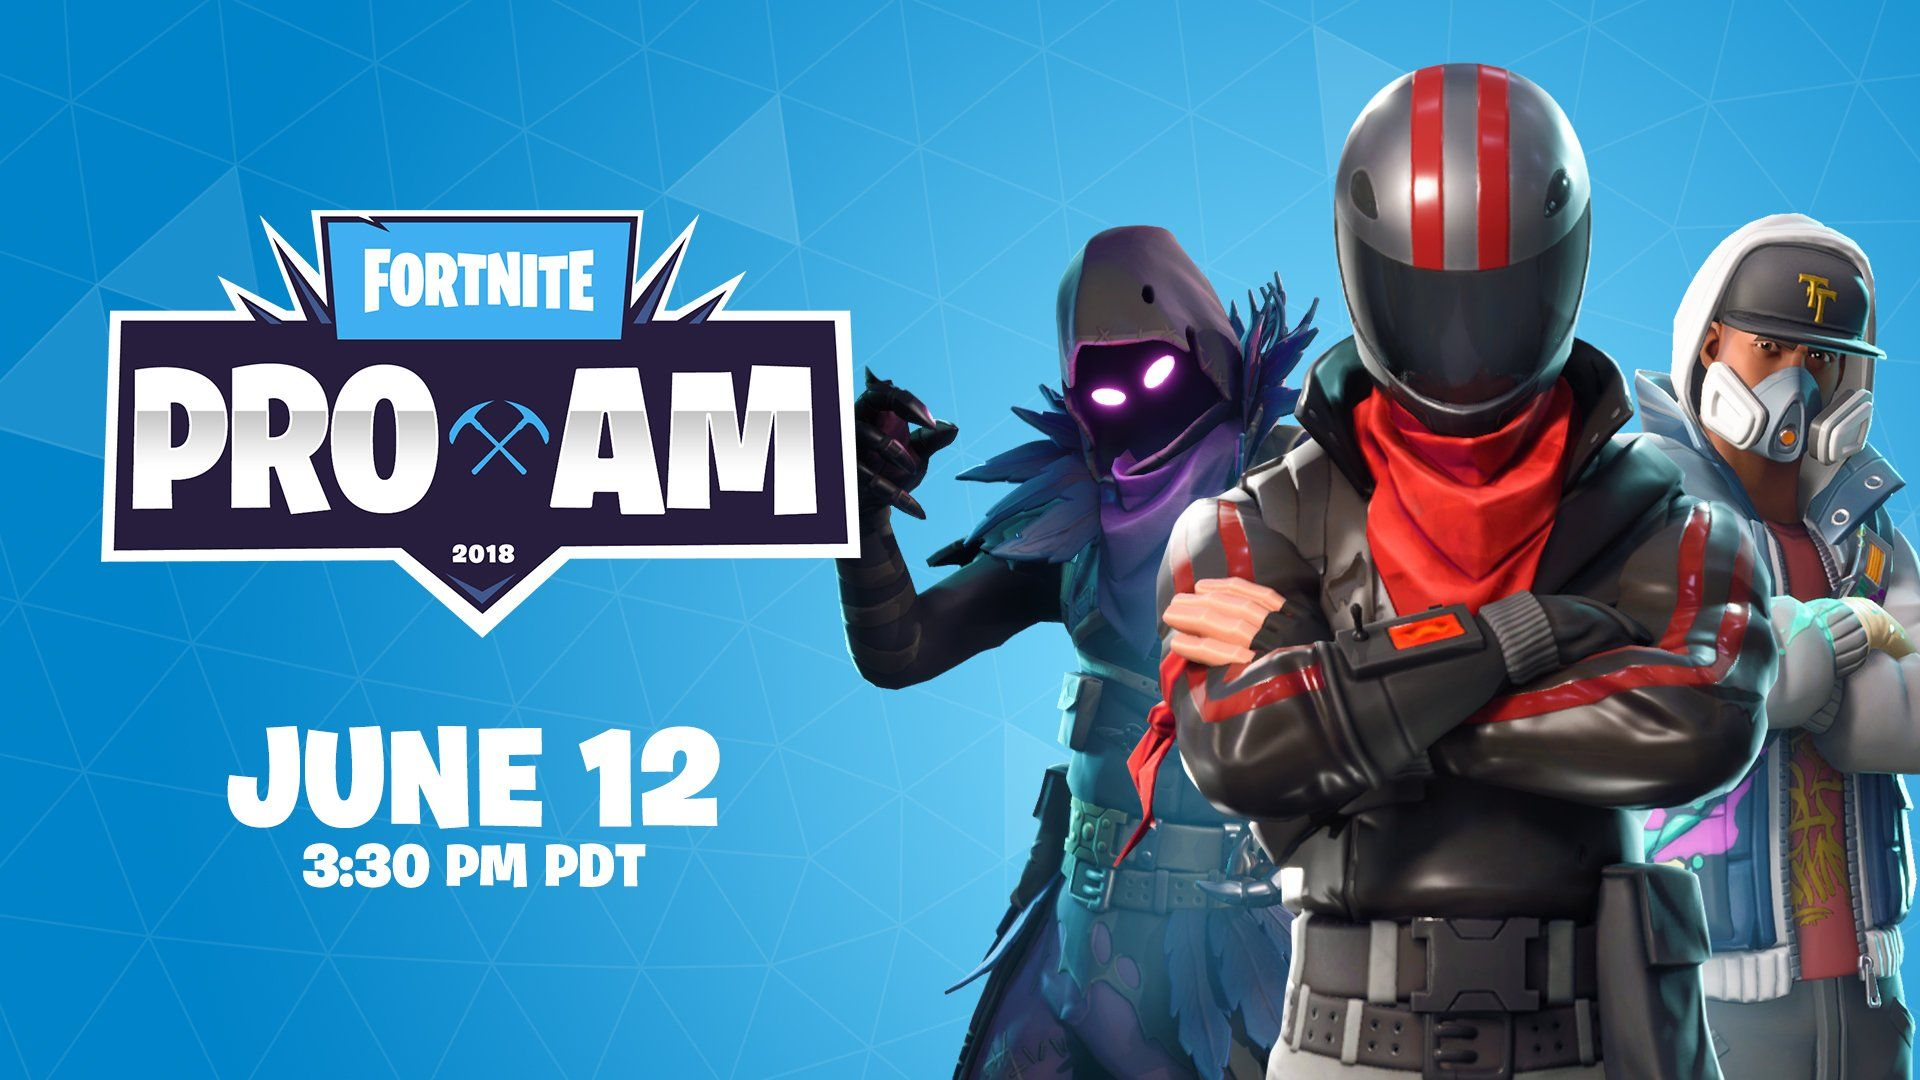 Who Played In Pro Am Fortnite 2018 Fortnite Pro Am Results Find Out Who Won The E3 Tournament